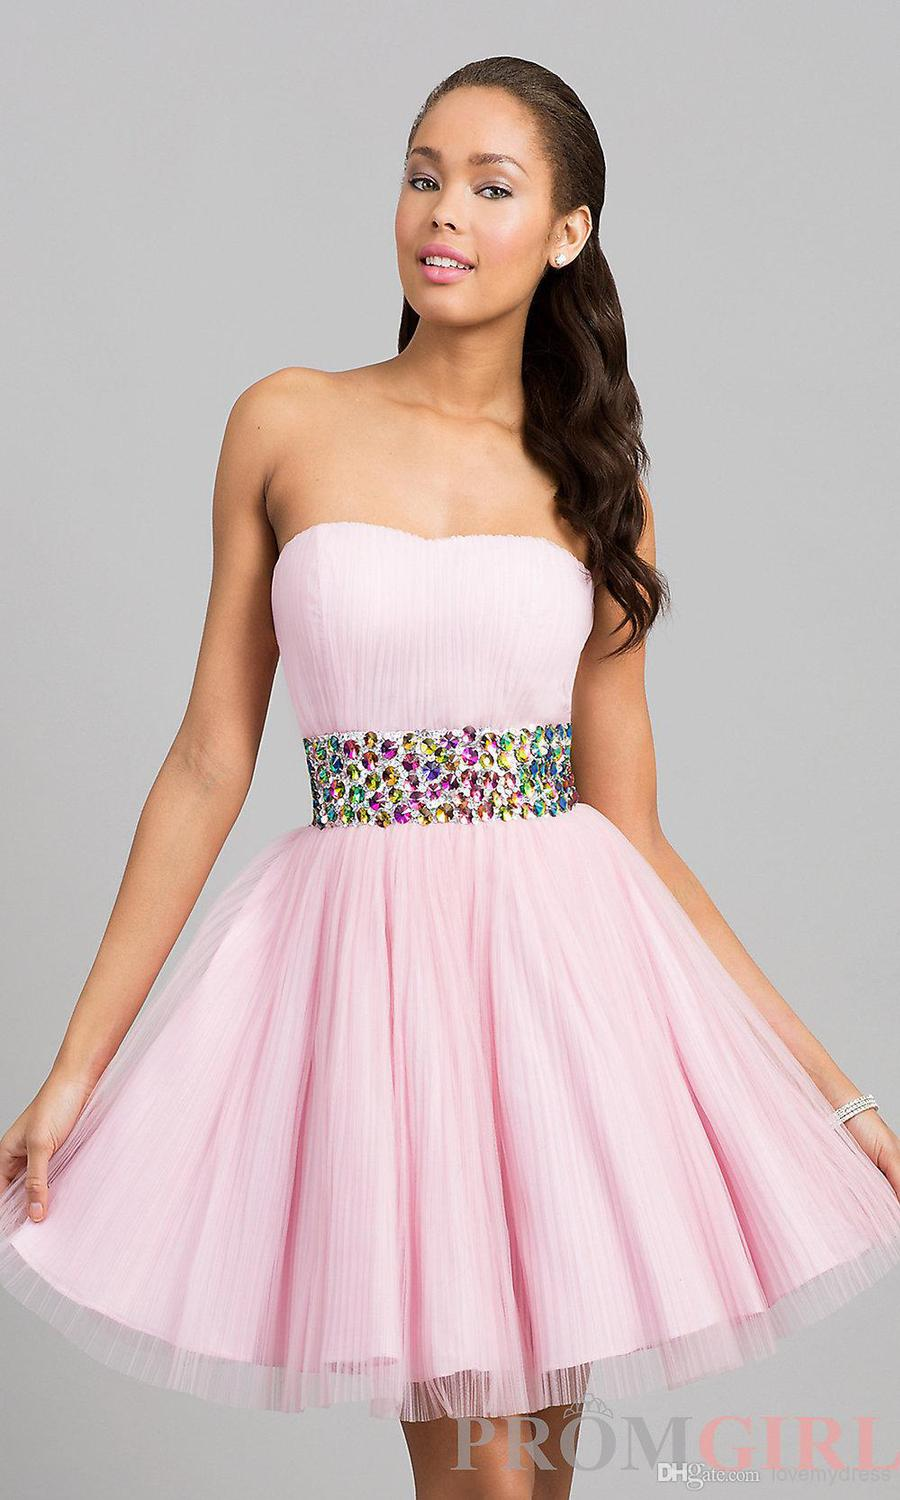 Kids Strapless Dresses